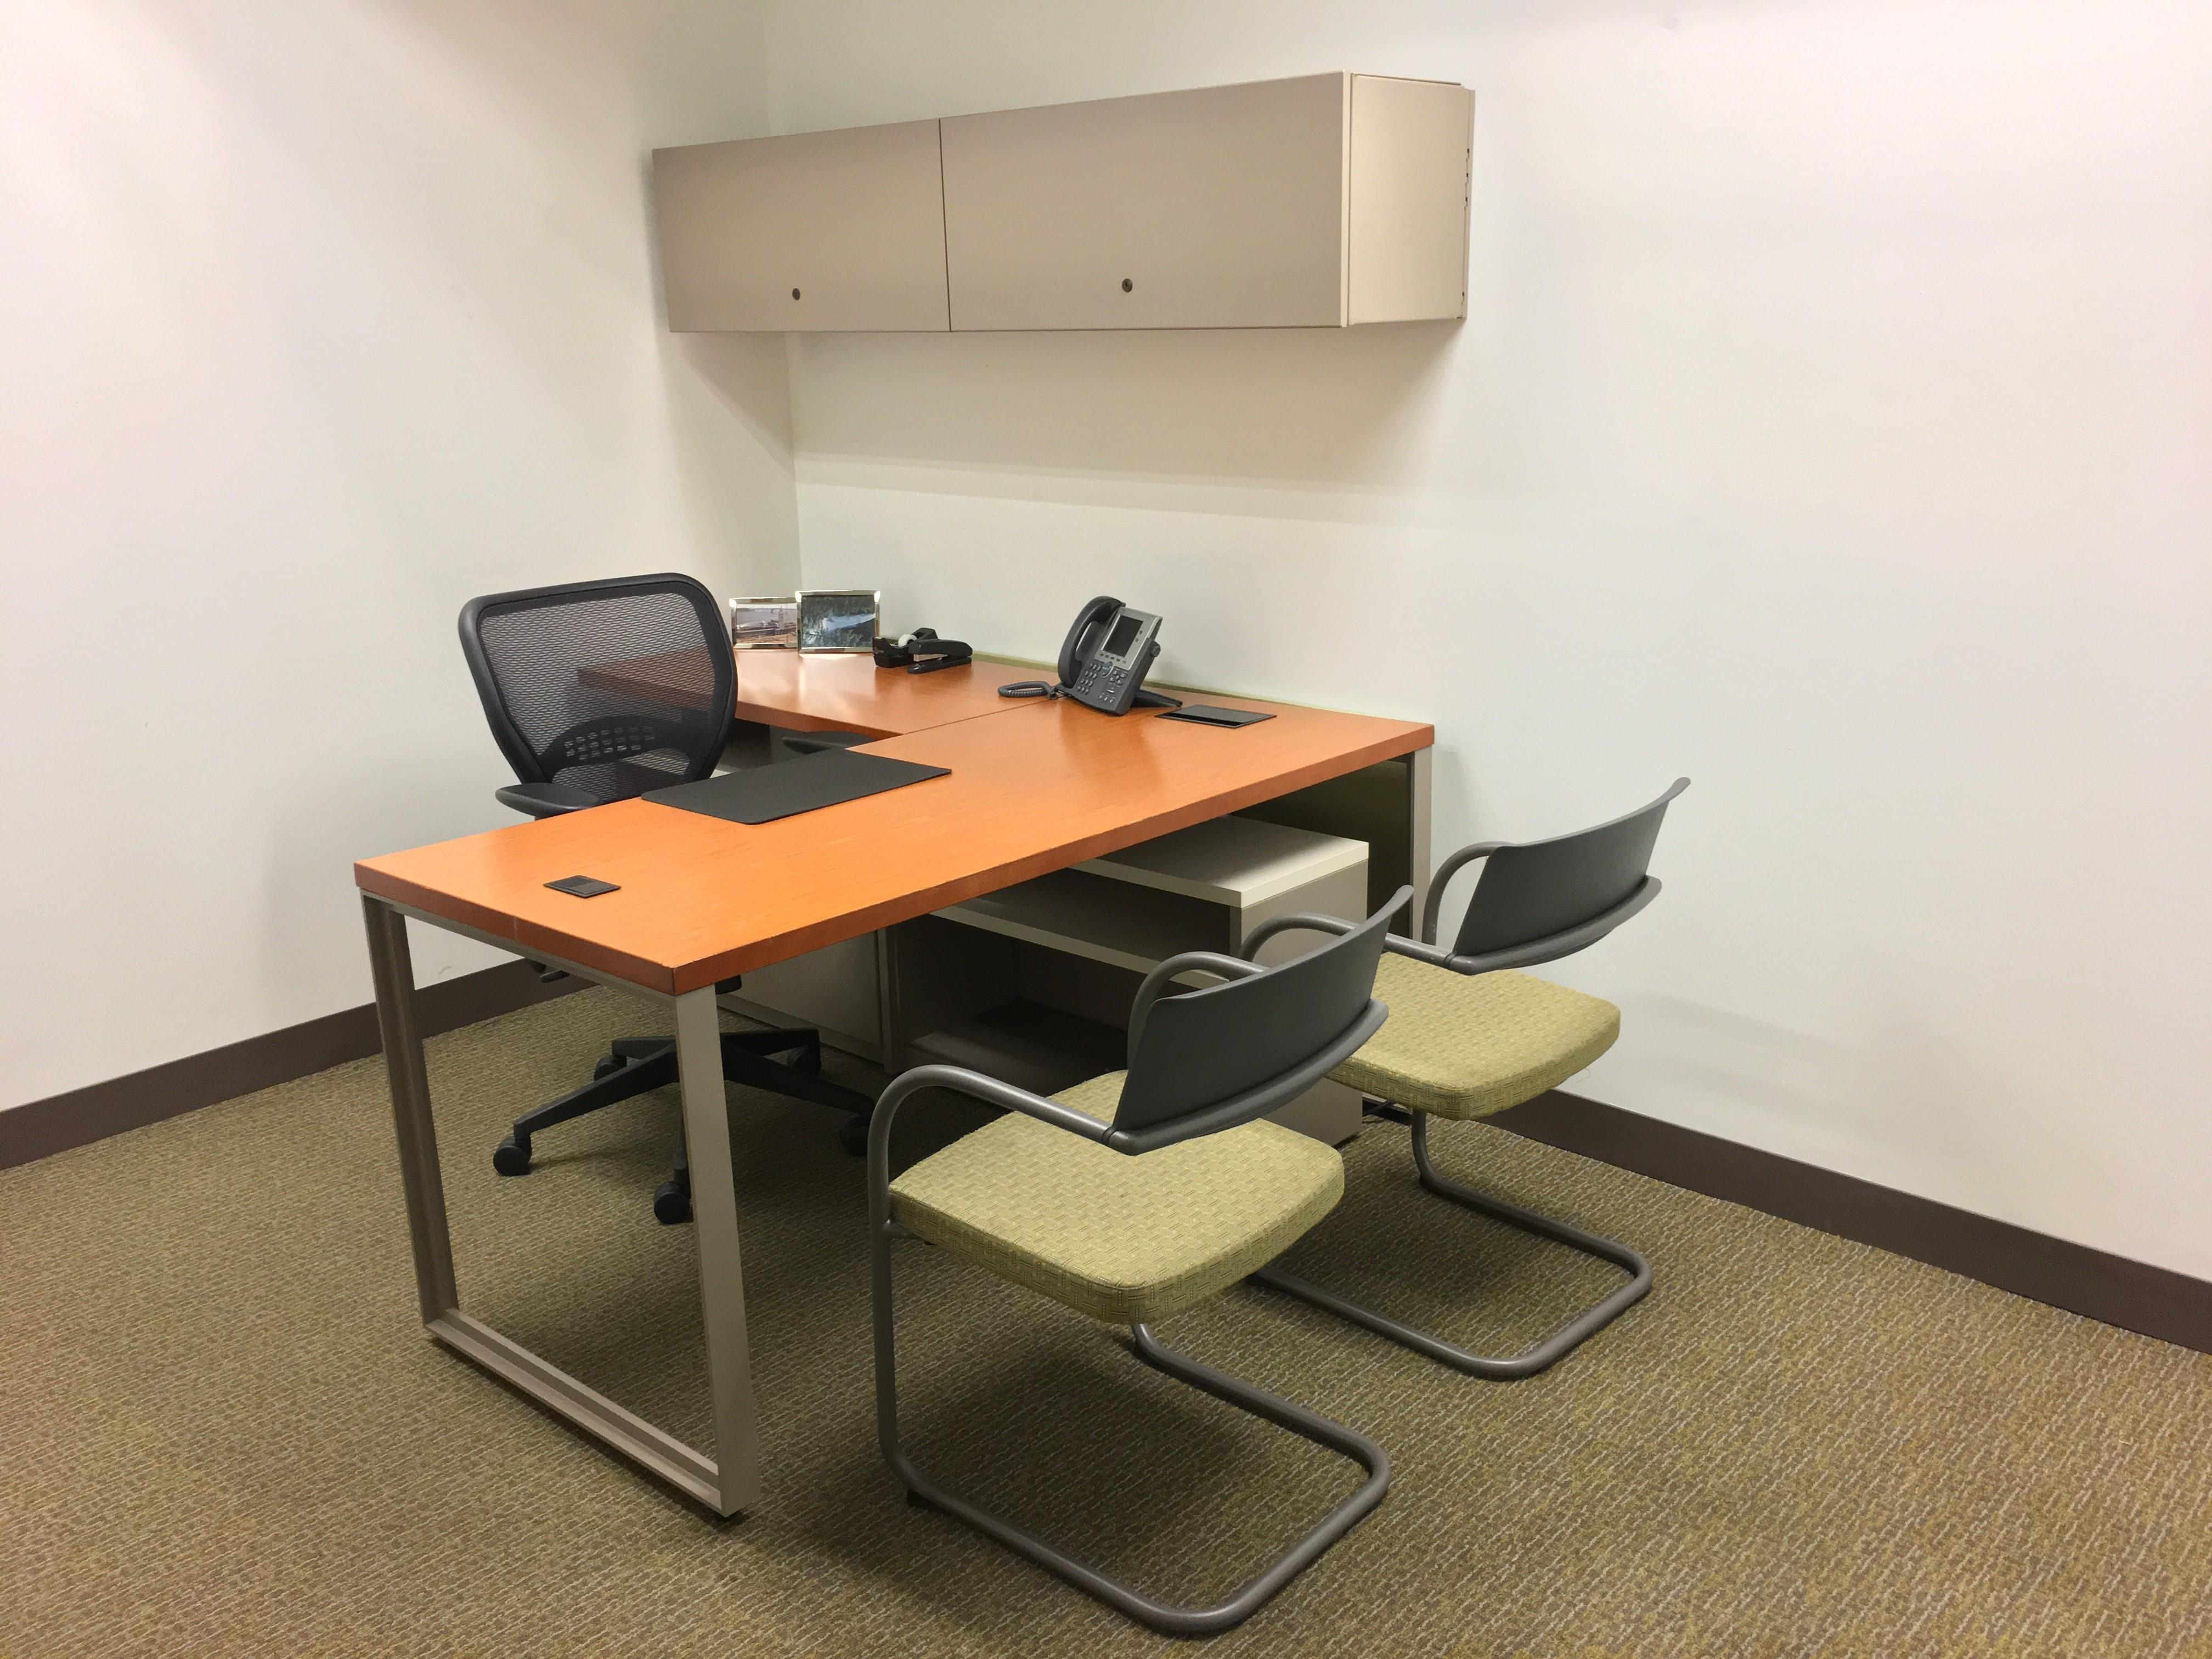 Carr Workplaces - Irvine Spectrum - All-inclusive for 1-person!